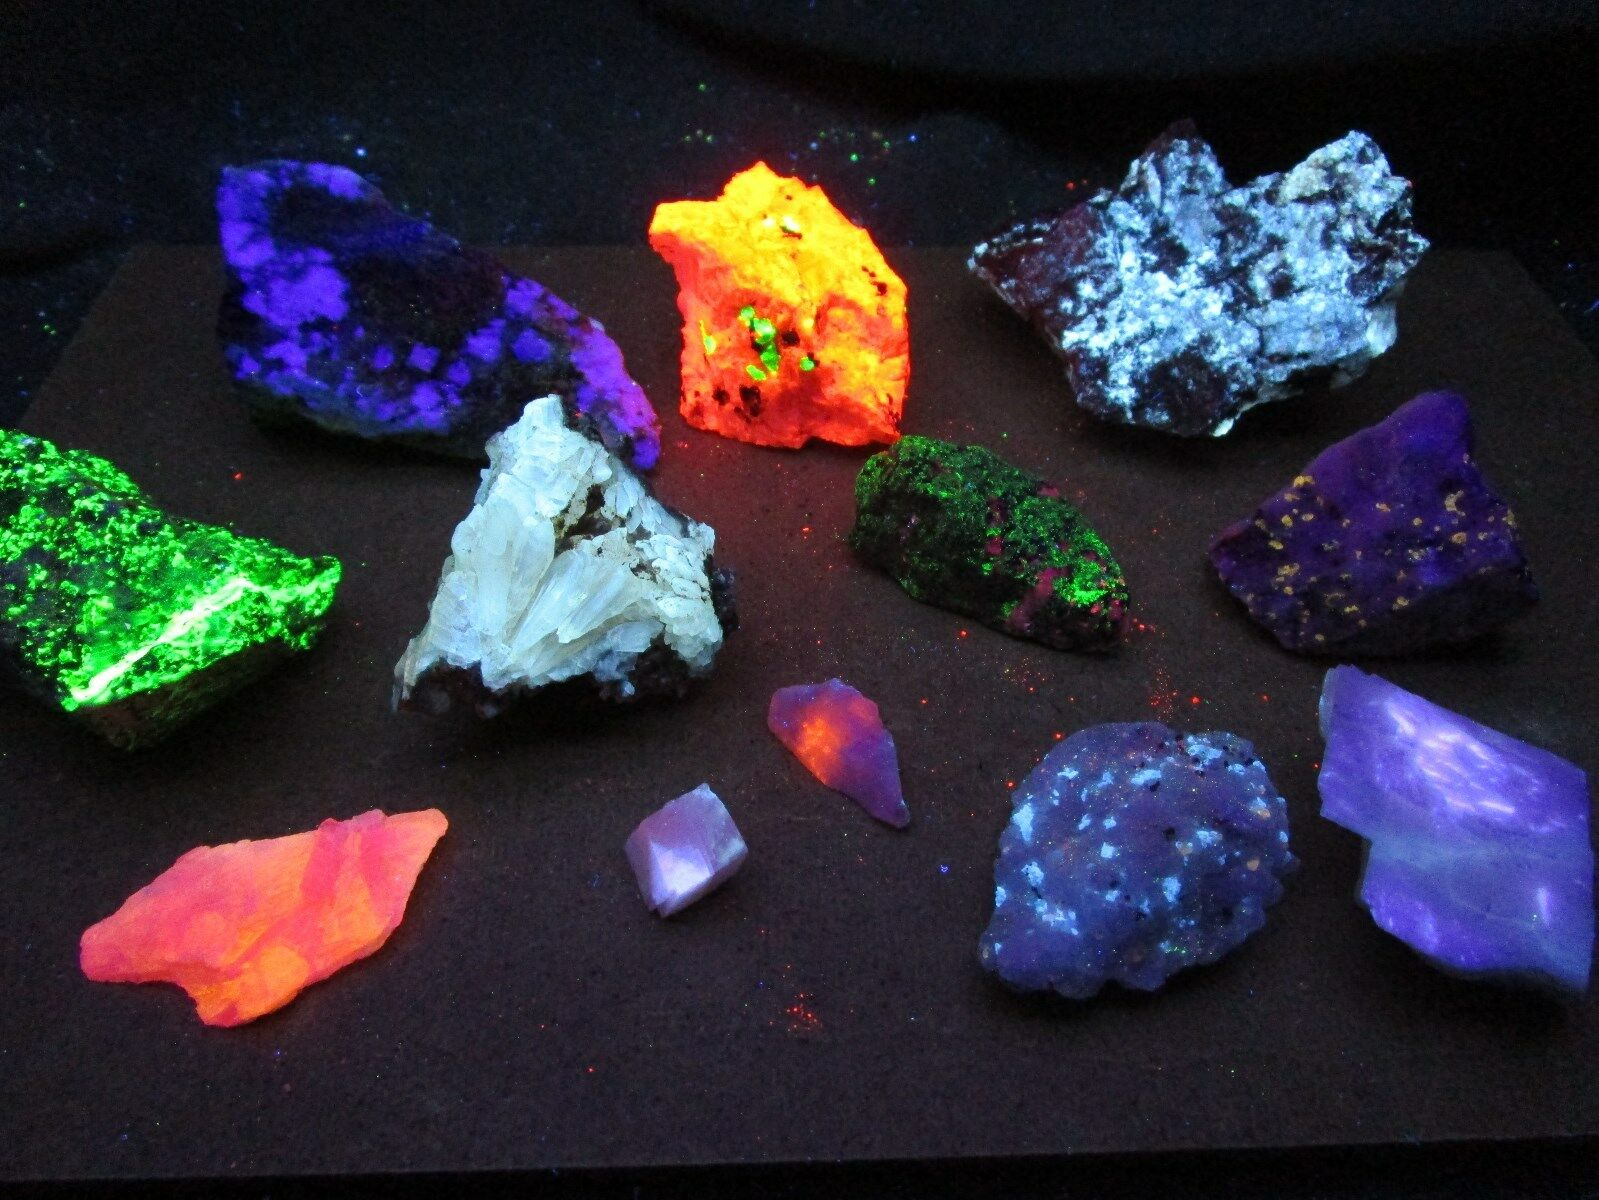 Clearance 2 Lb Fluorescent mineral rock crystal mineral